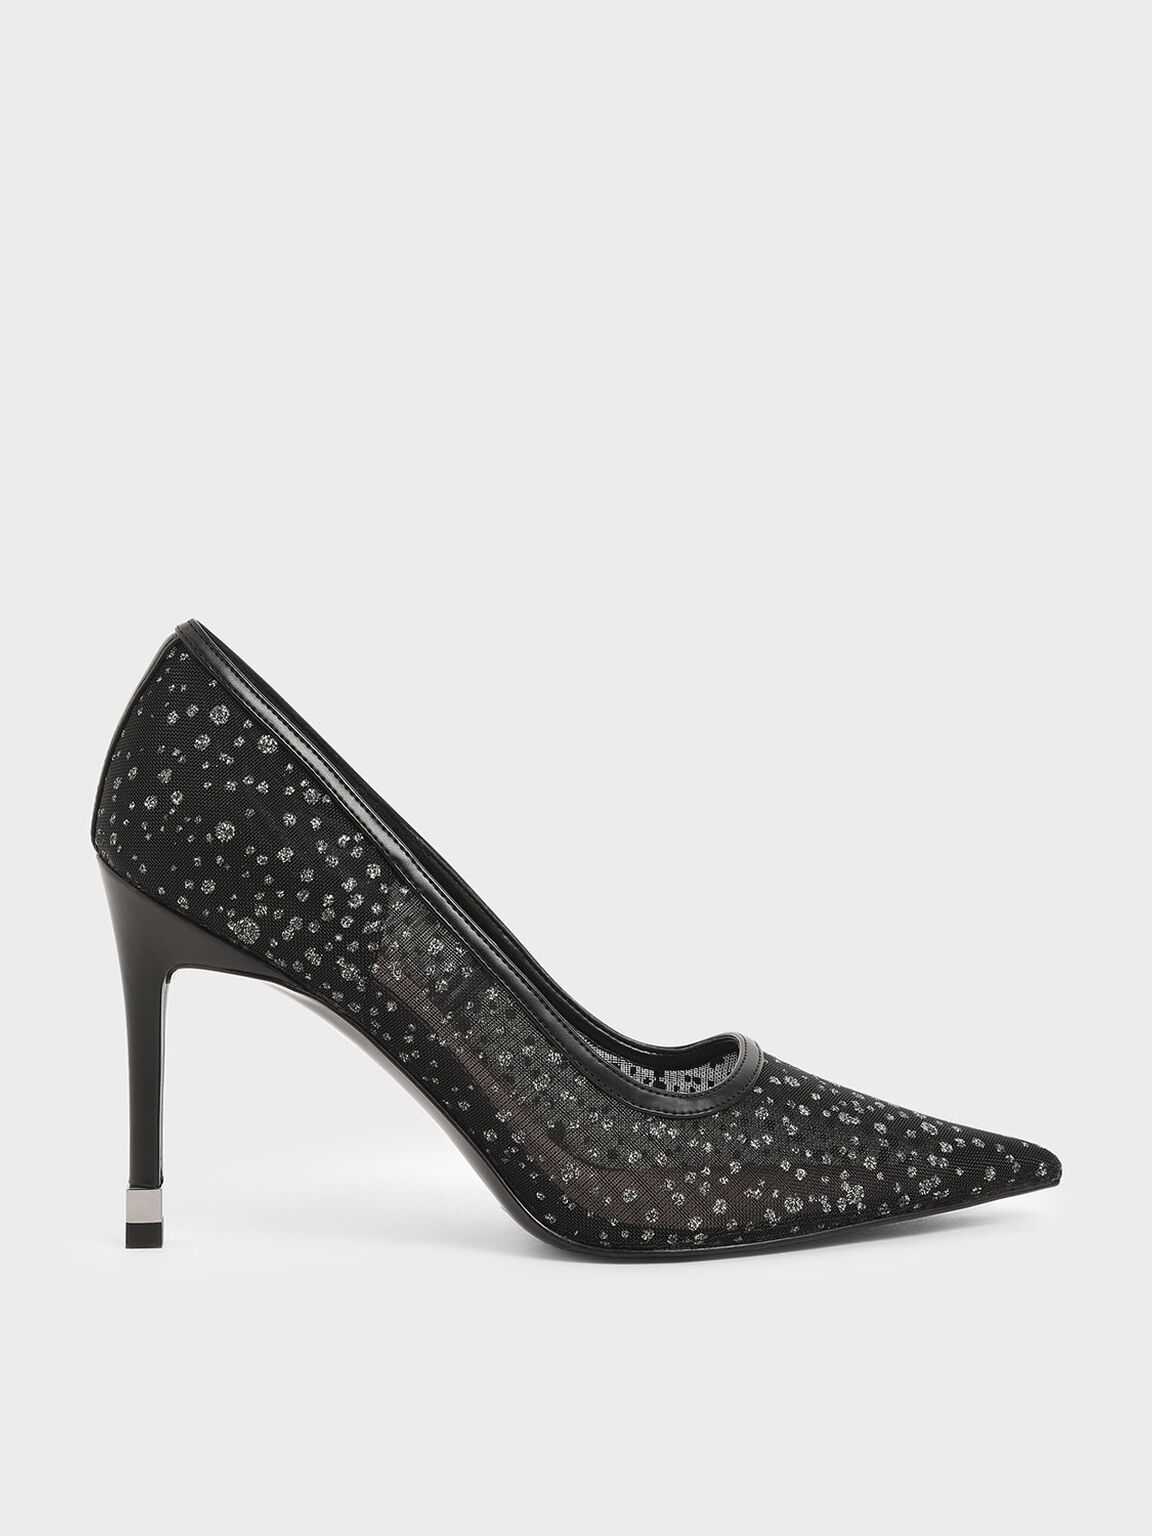 Mesh Stiletto Pumps, Black Textured, hi-res